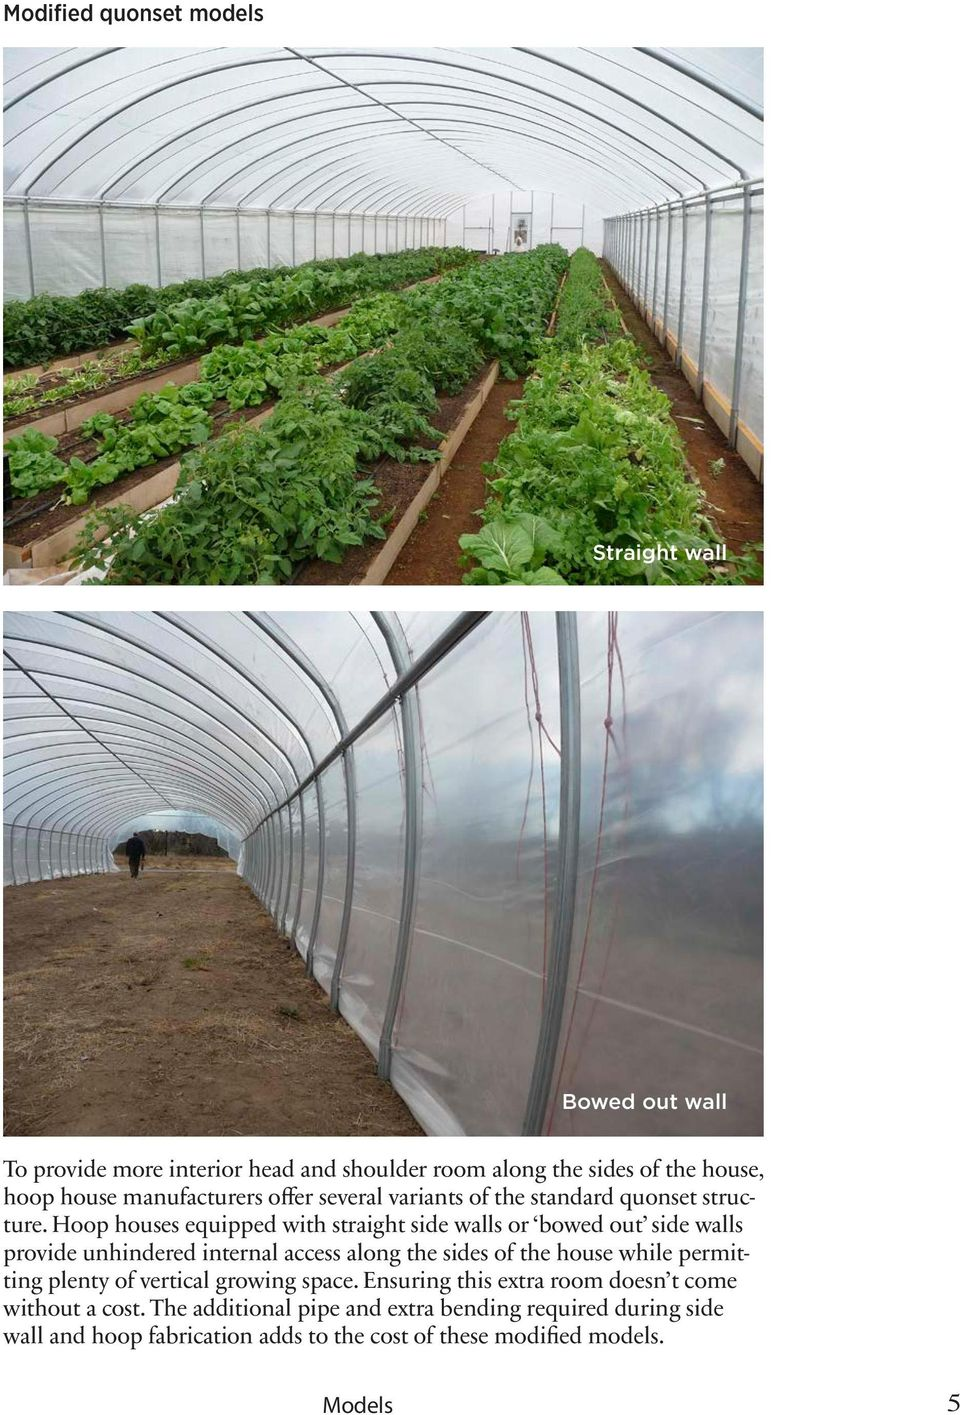 Hoop houses equipped with straight side walls or bowed out side walls provide unhindered internal access along the sides of the house while